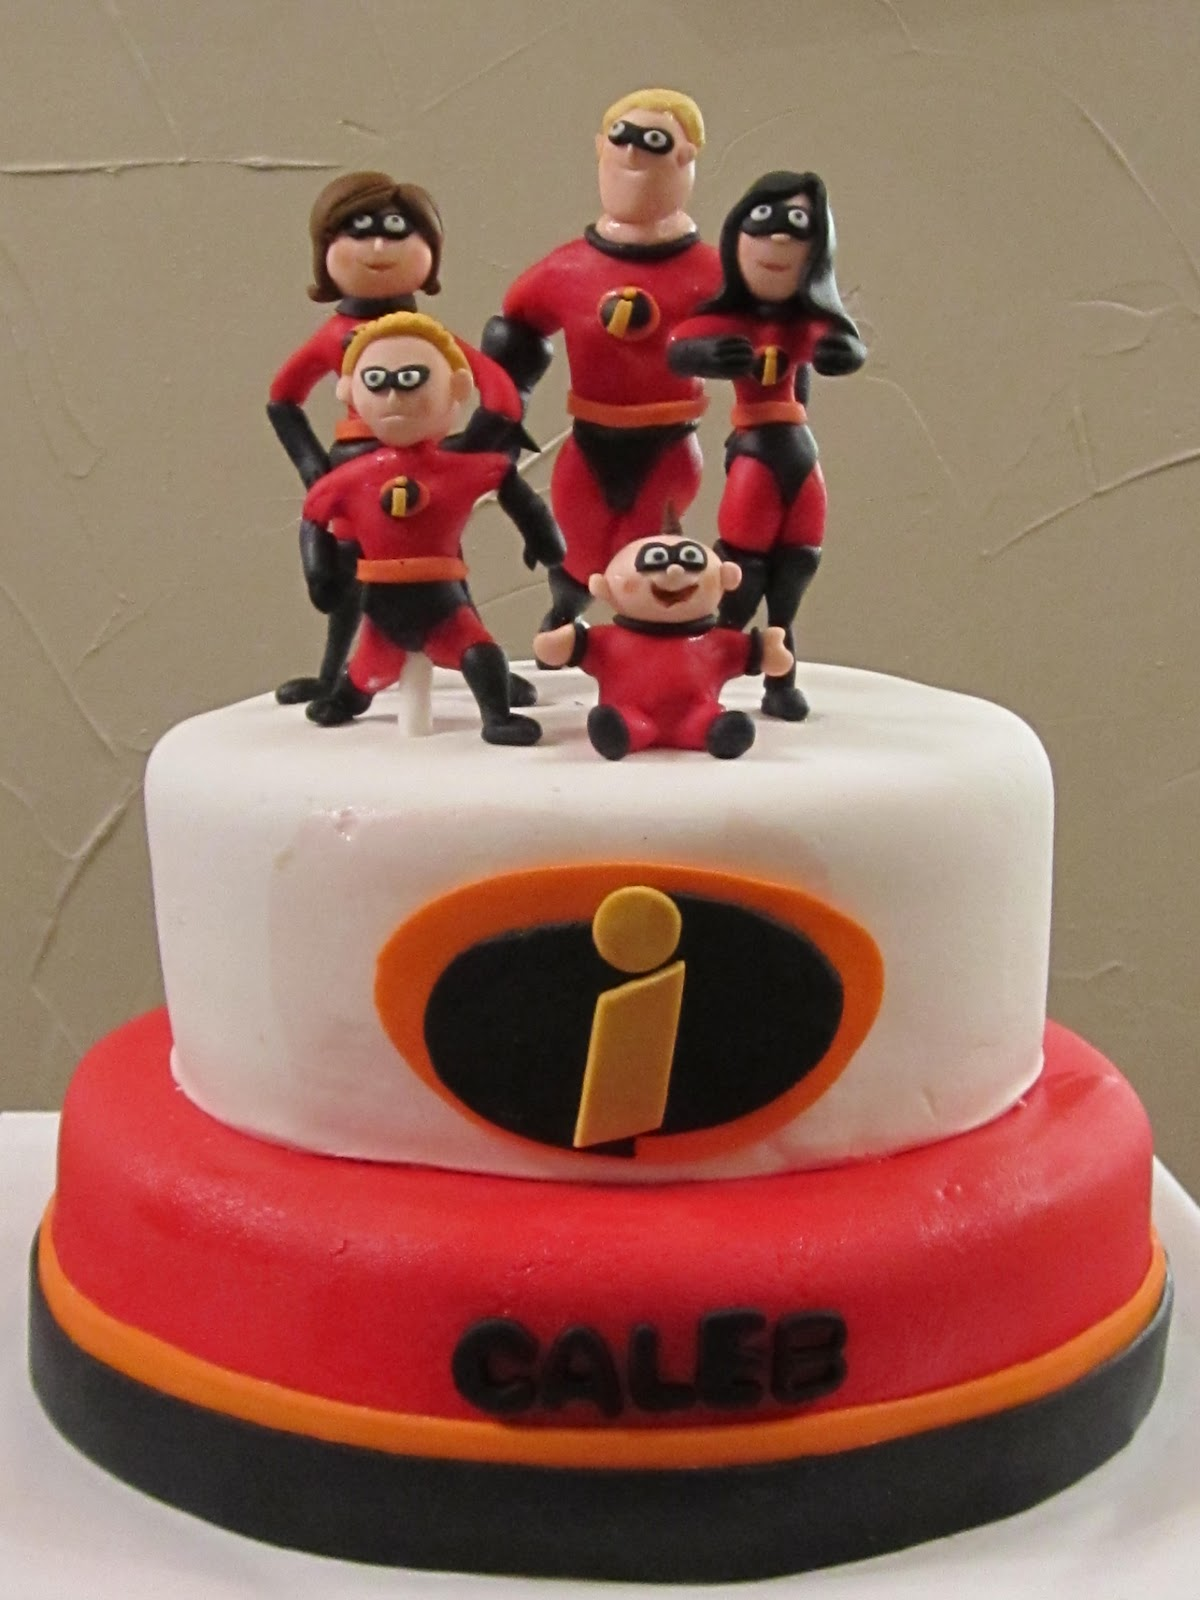 Decorations For Birthday Party At Home Frosted Insanity Incredibles Cake